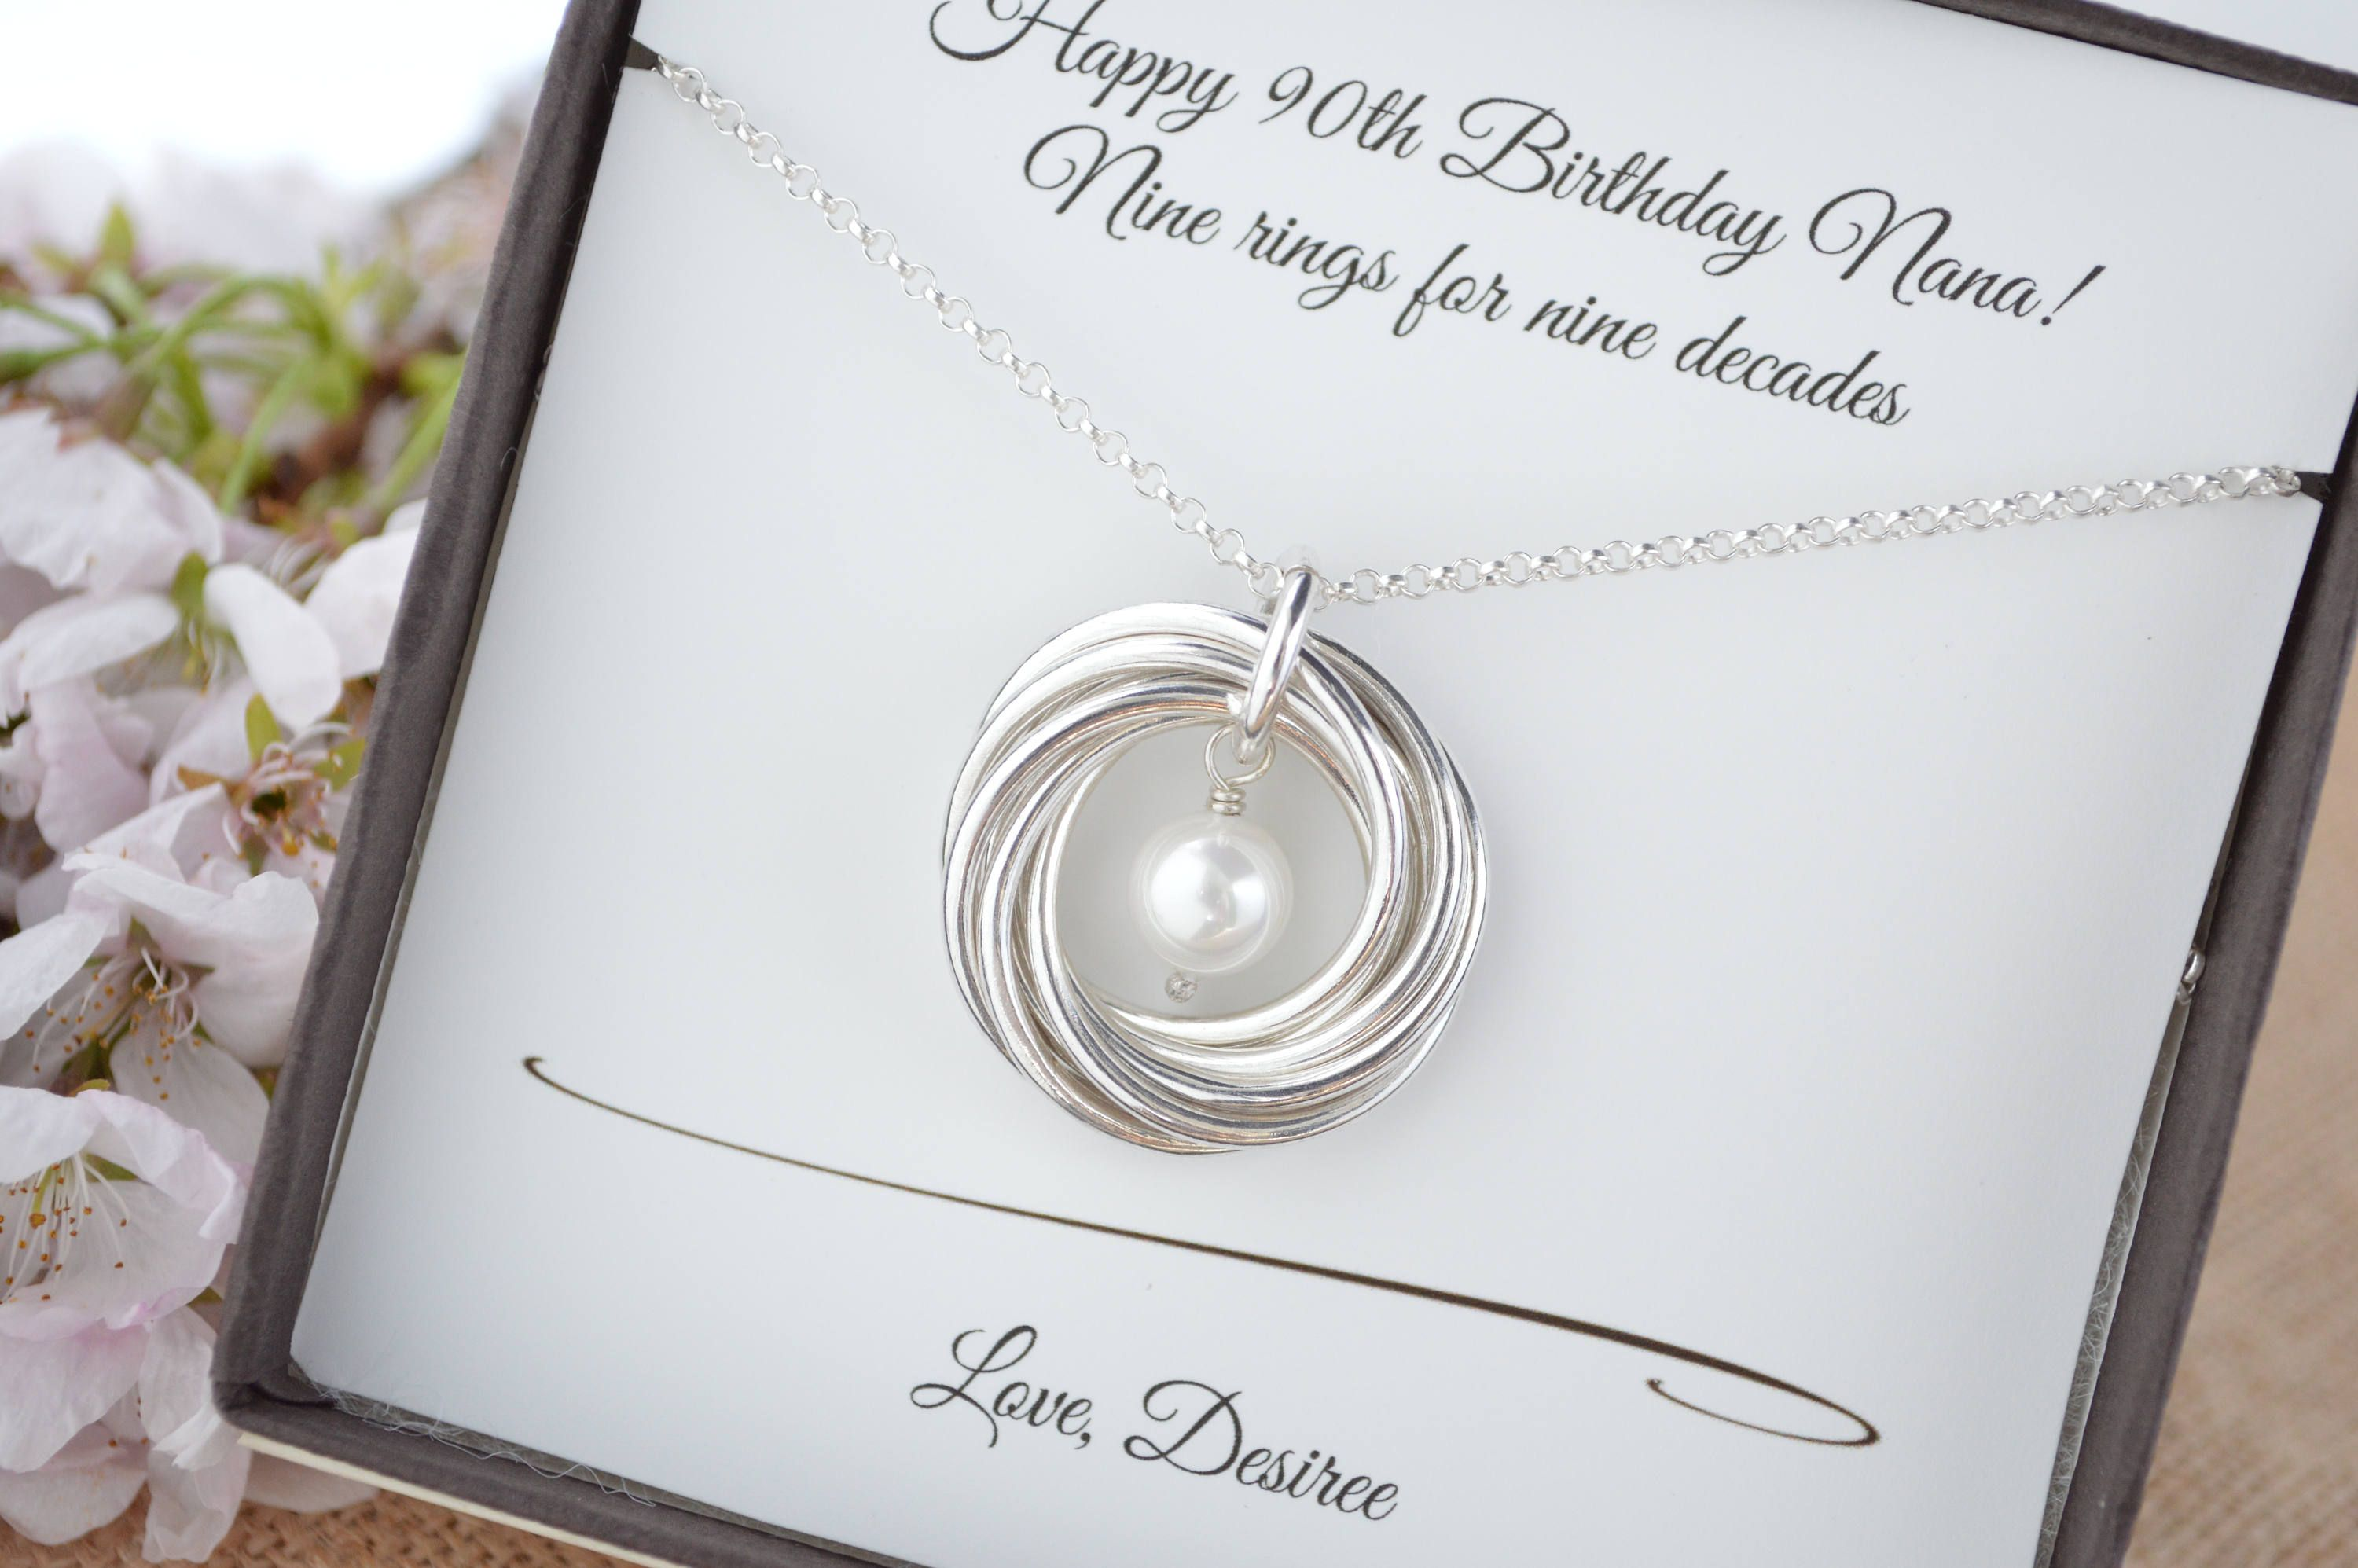 90th birthday gift for mom and grandma necklace 9 rings